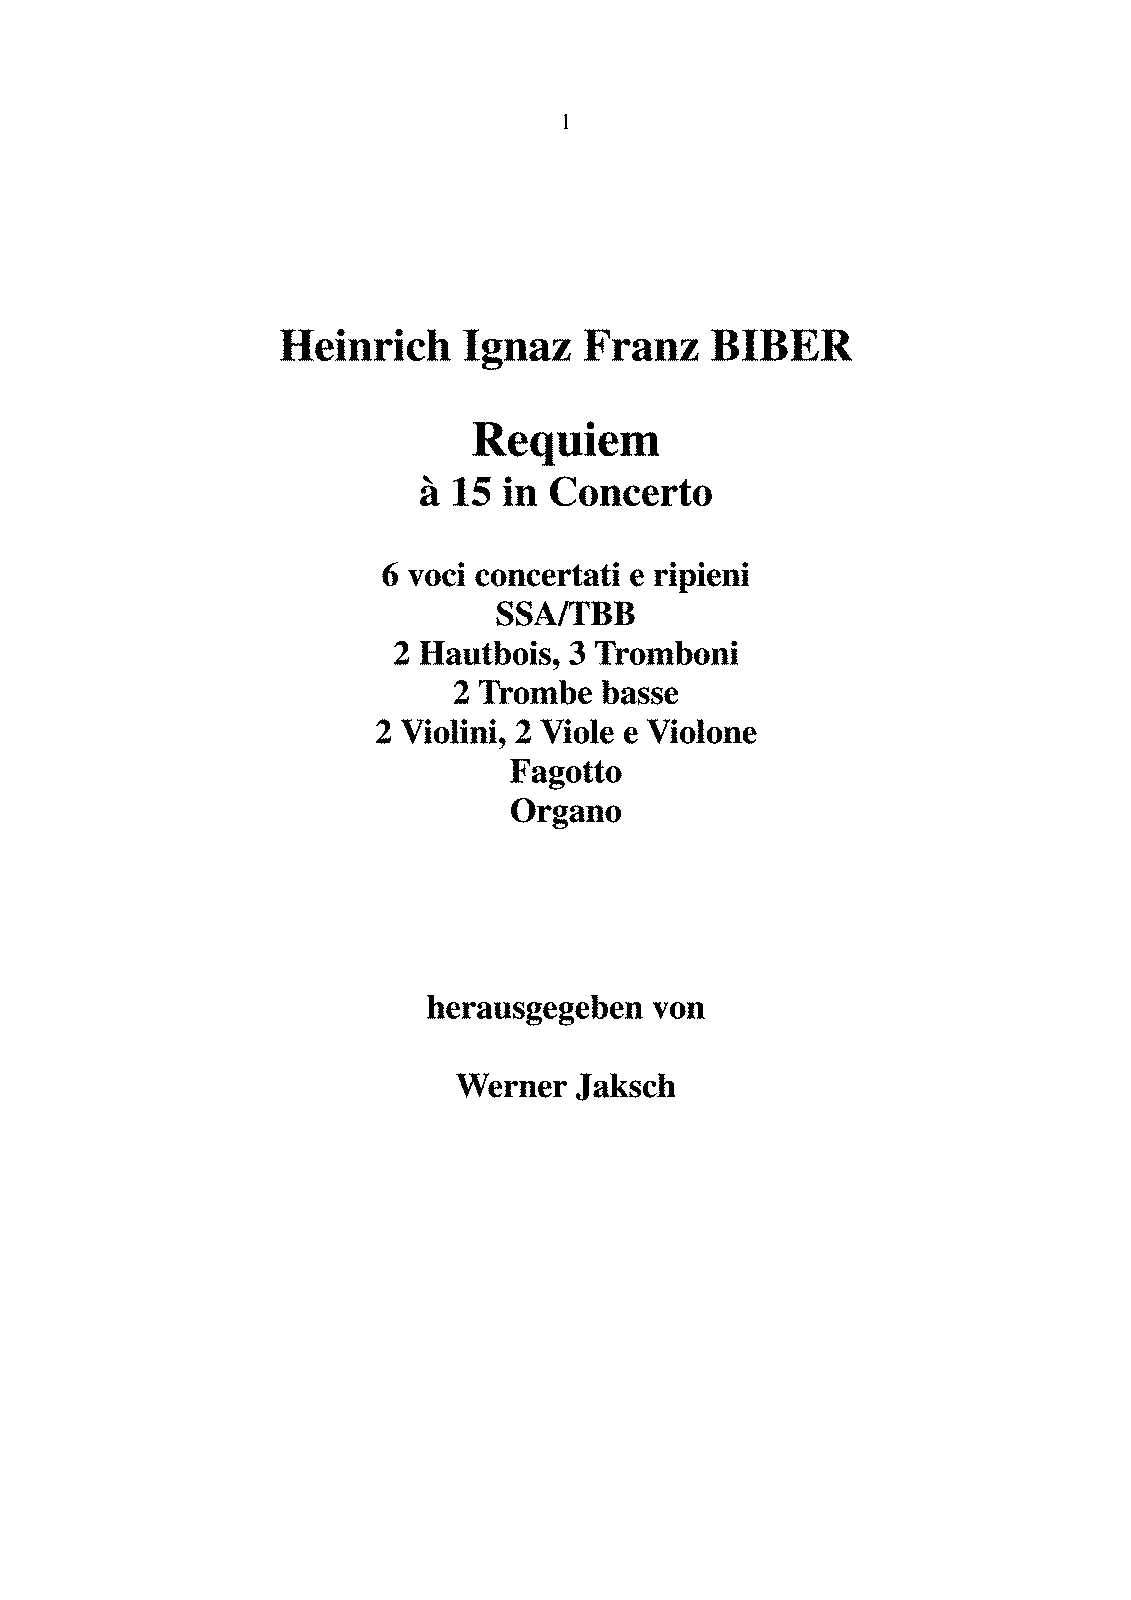 PMLP112378-Biber Requiem A-major score.pdf